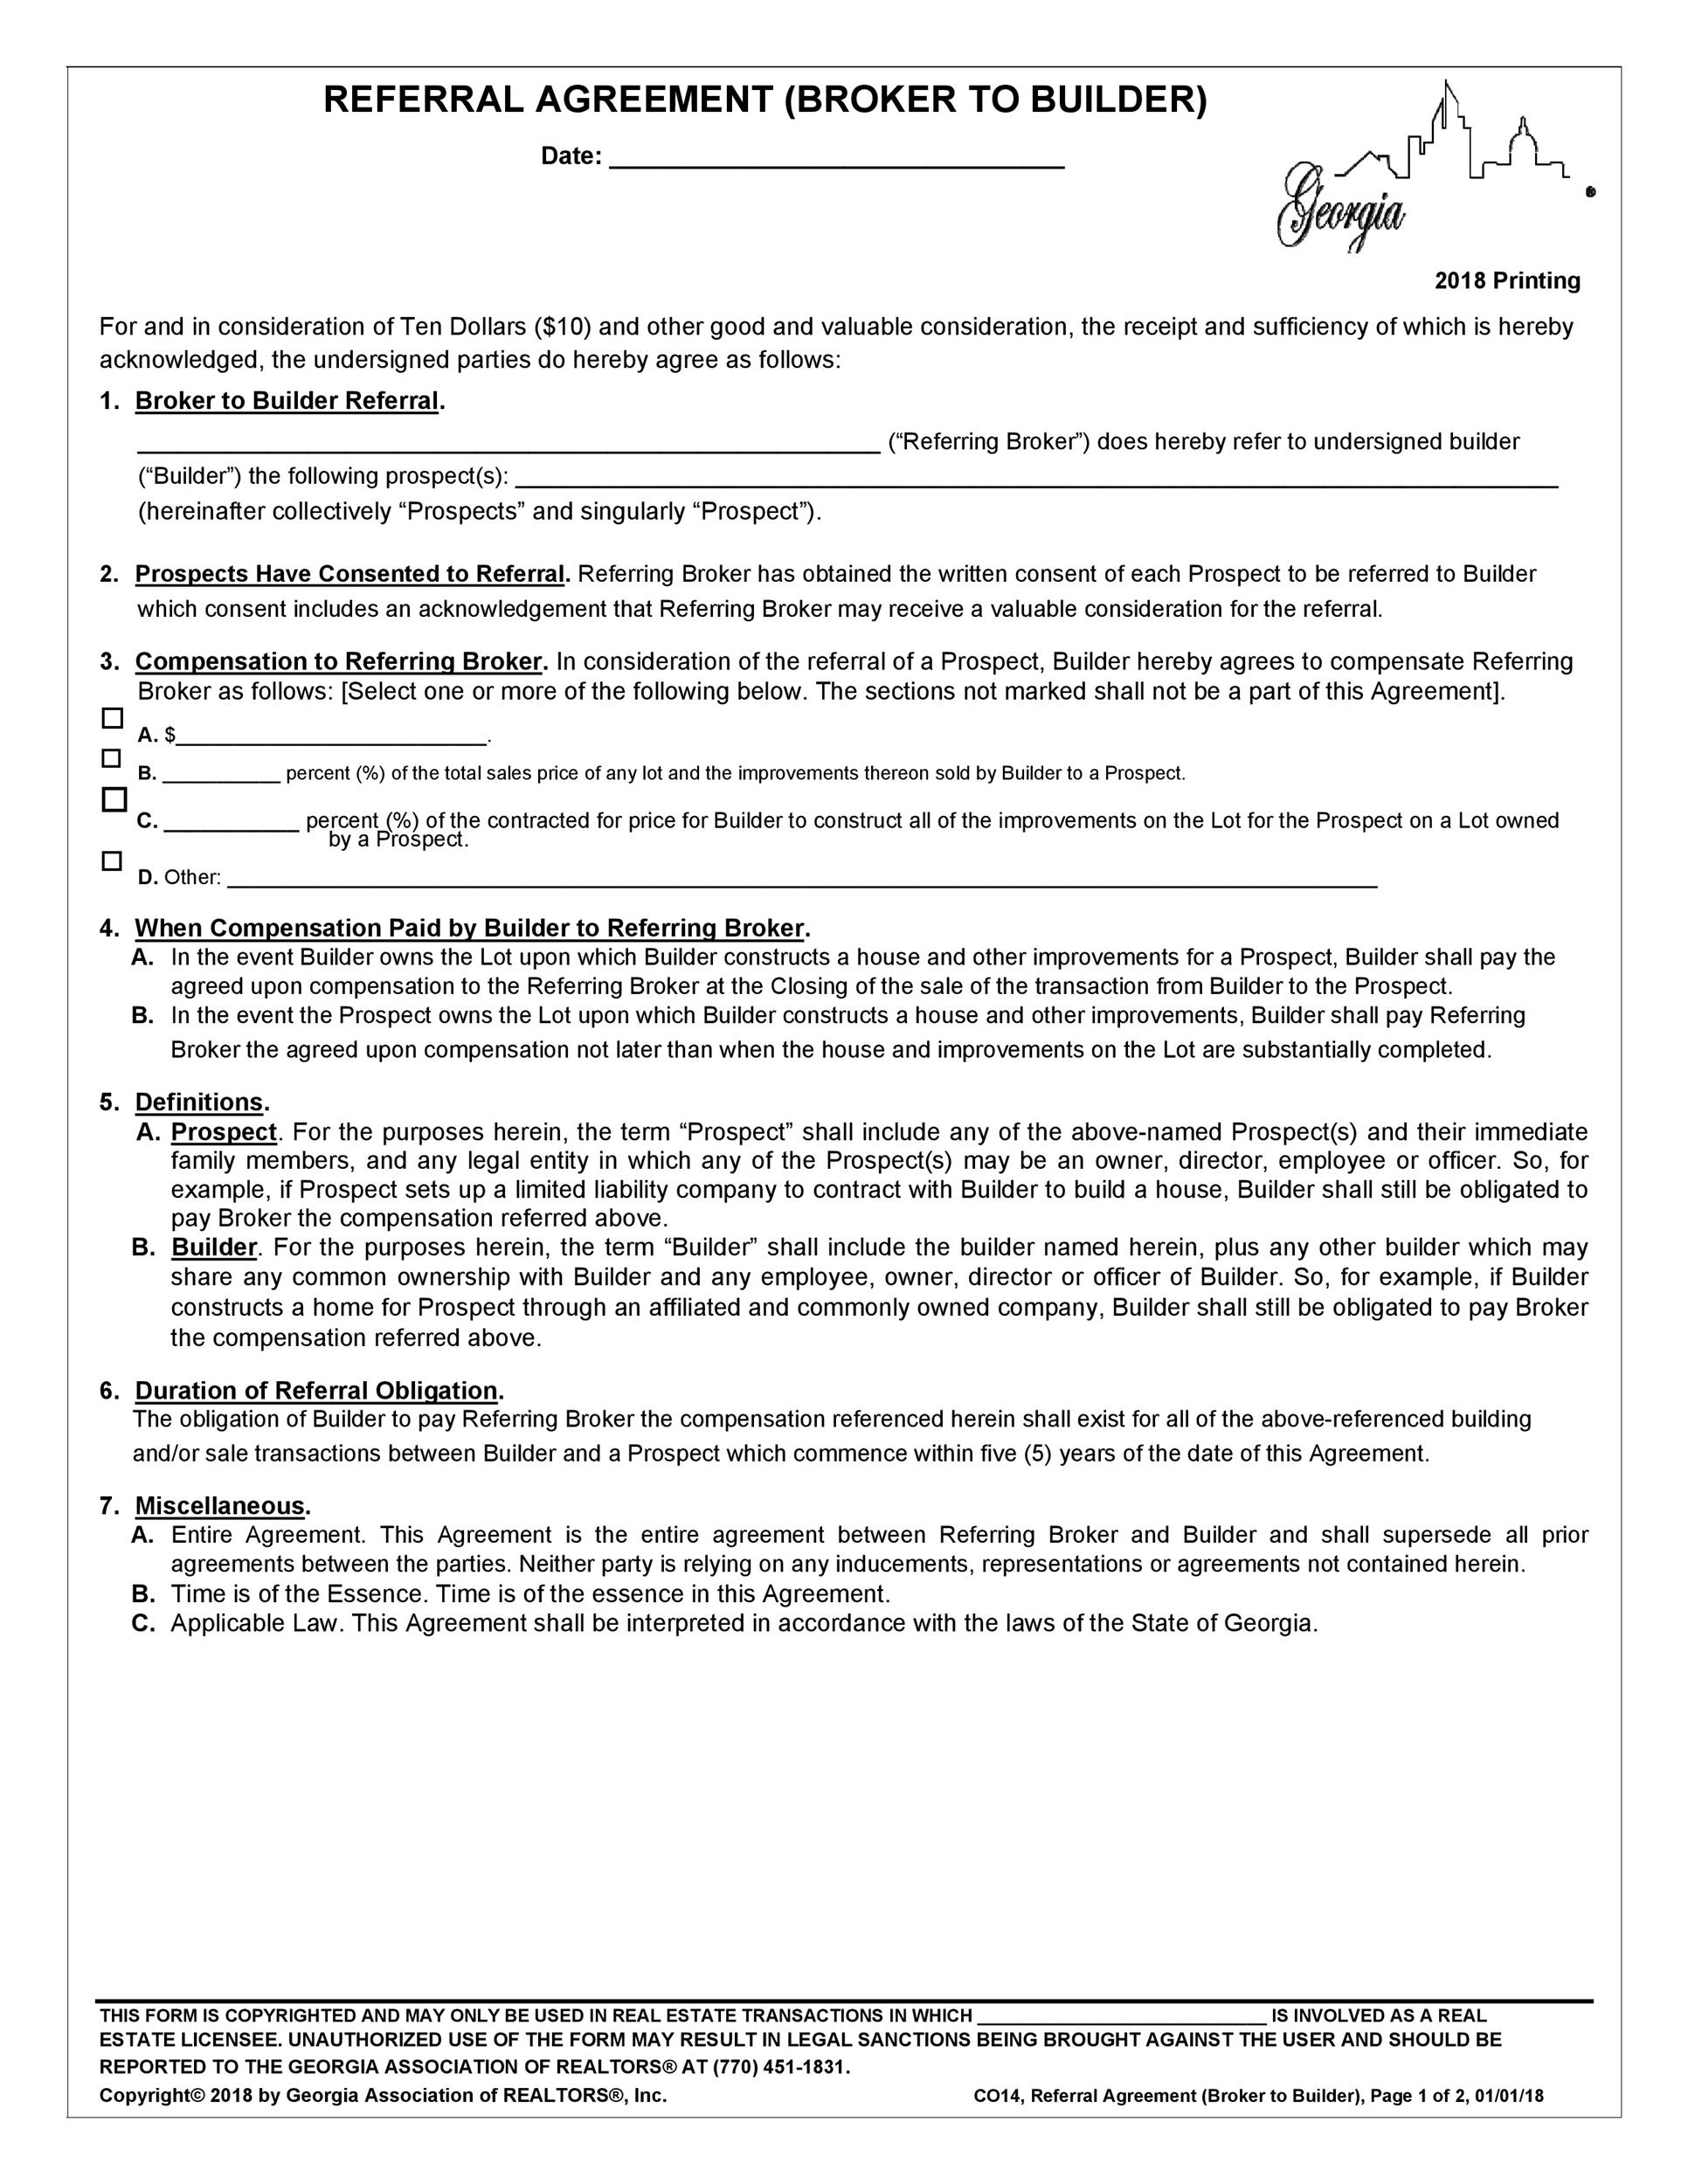 Free referral agreement template 21